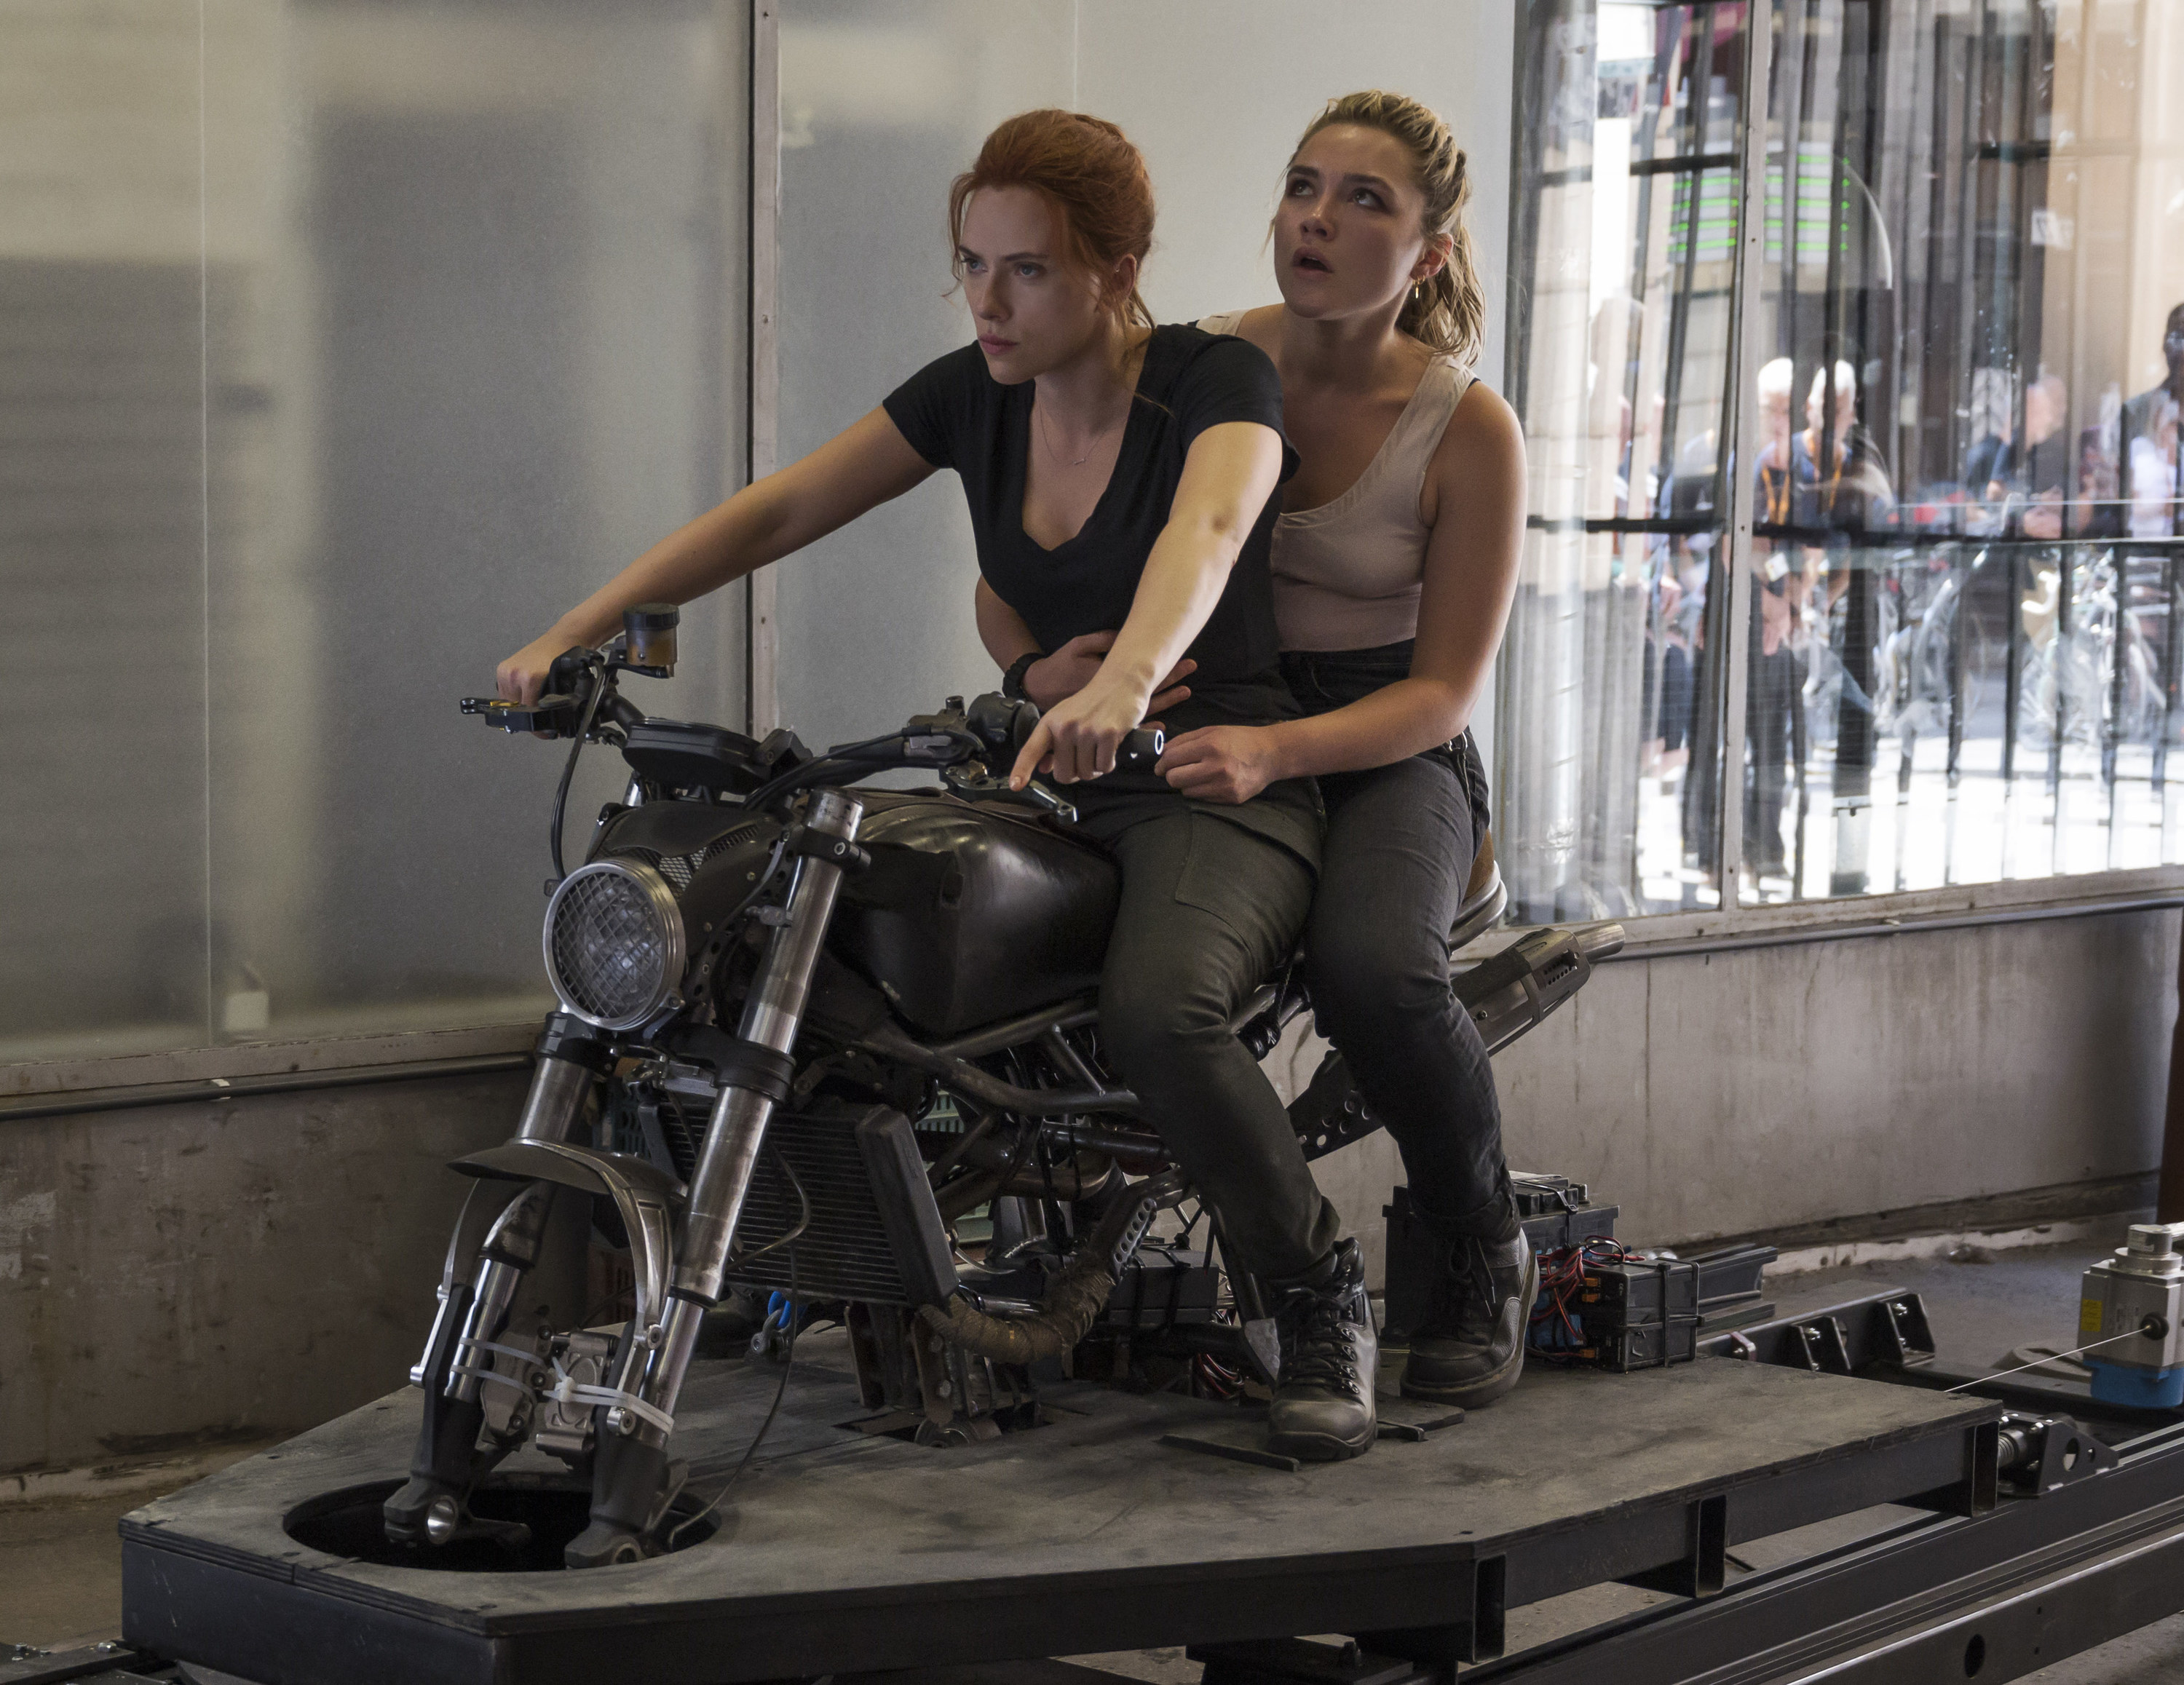 Scarlett and Florence sitting on a motorbike on a stand